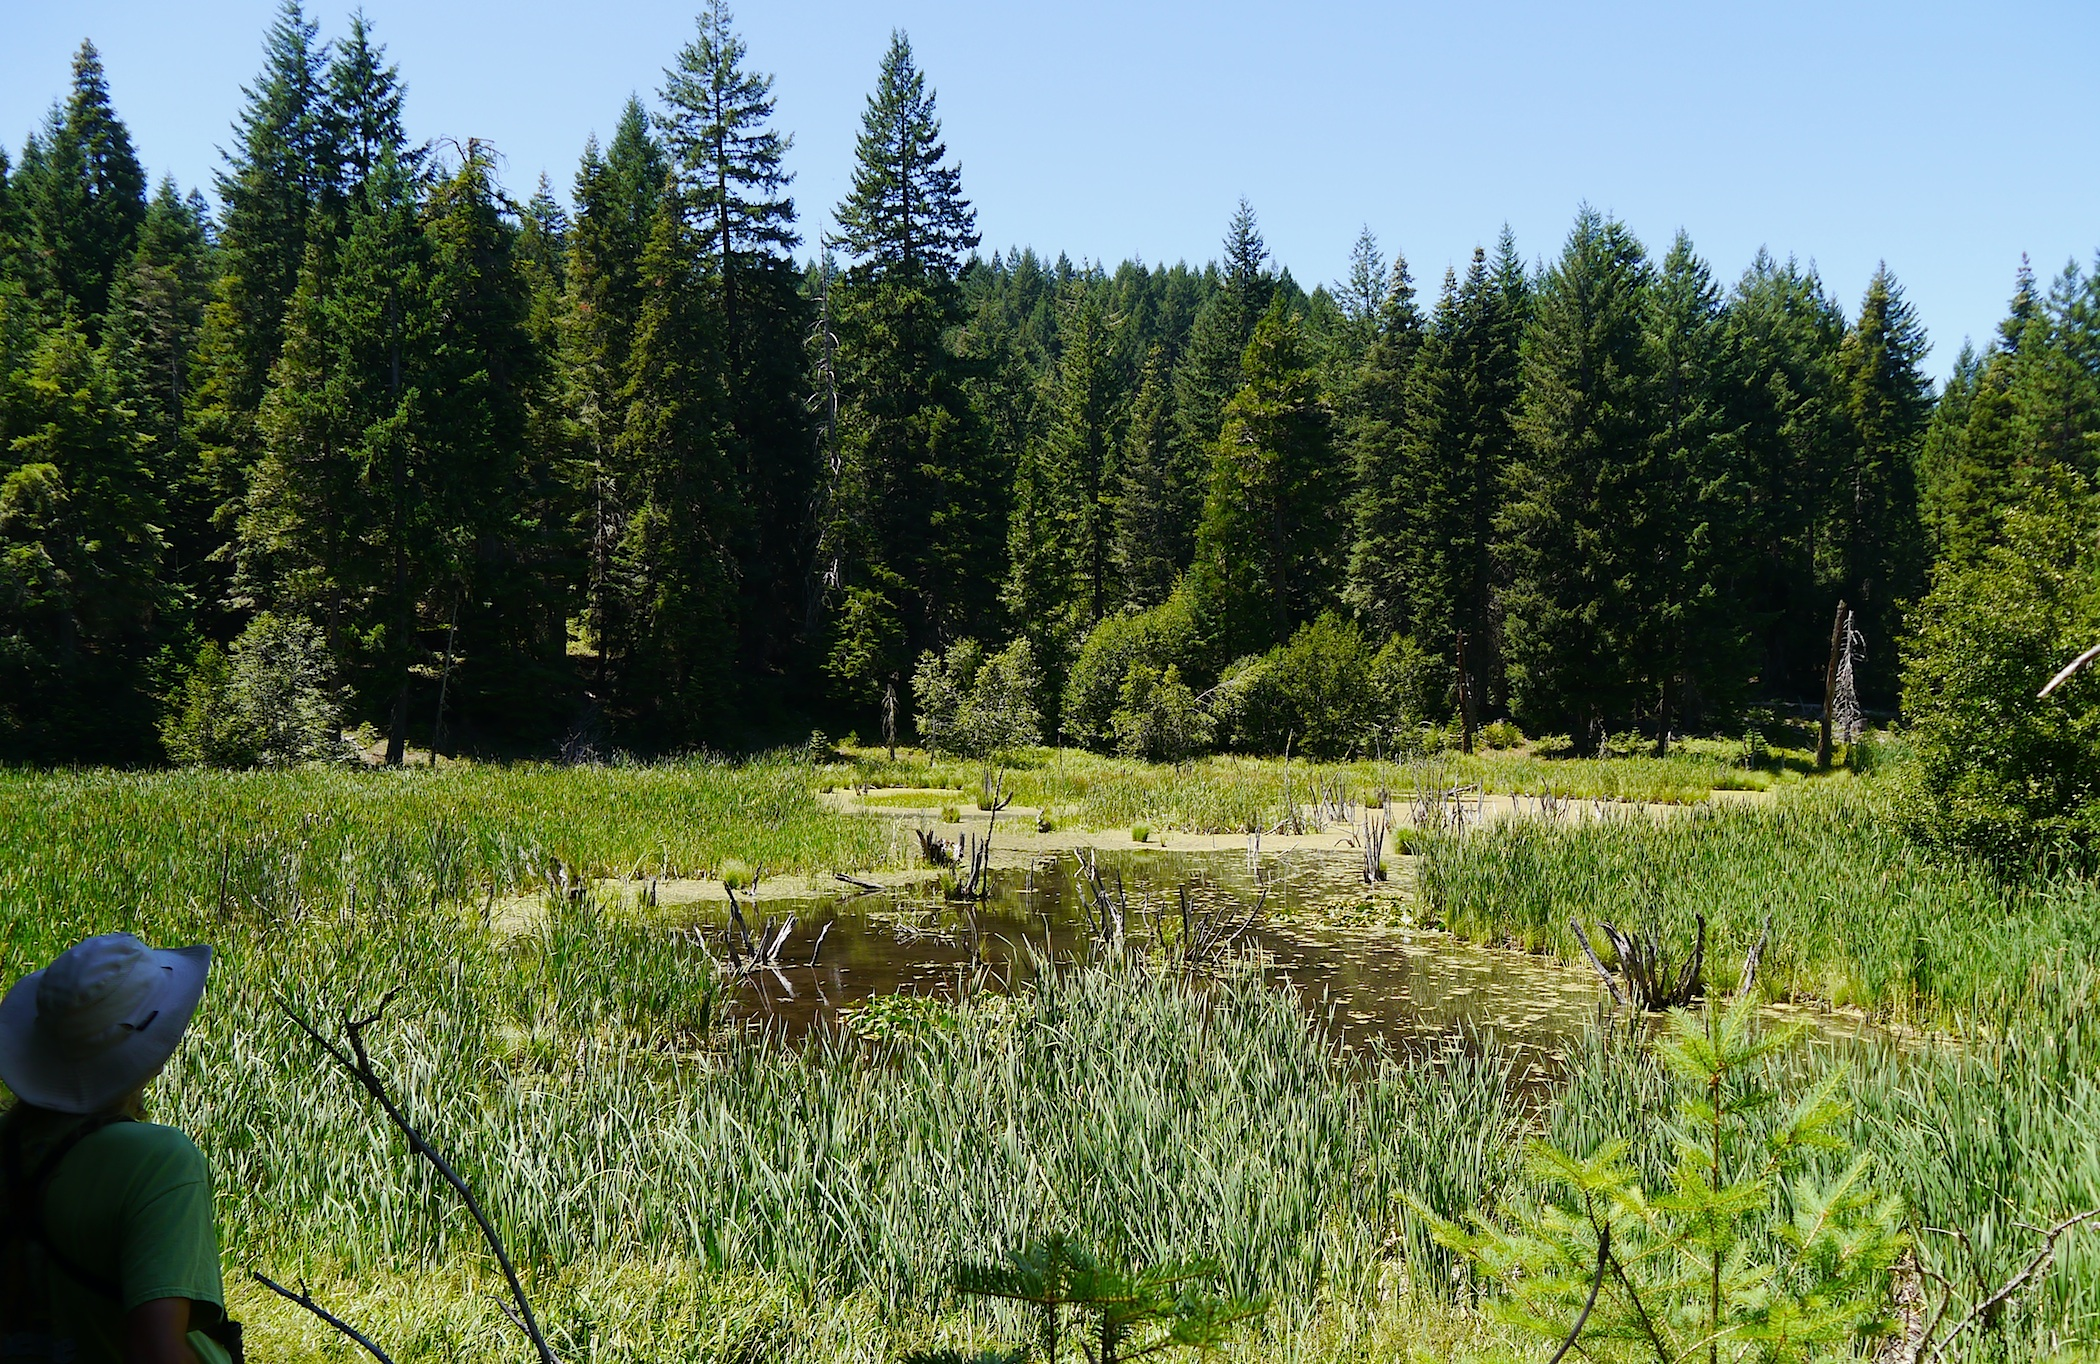 We viewed a parsnip lake from afar. Dr. parker didn't want us to contaminate the lake, where the spotted frog breeds. tpdickey photo.